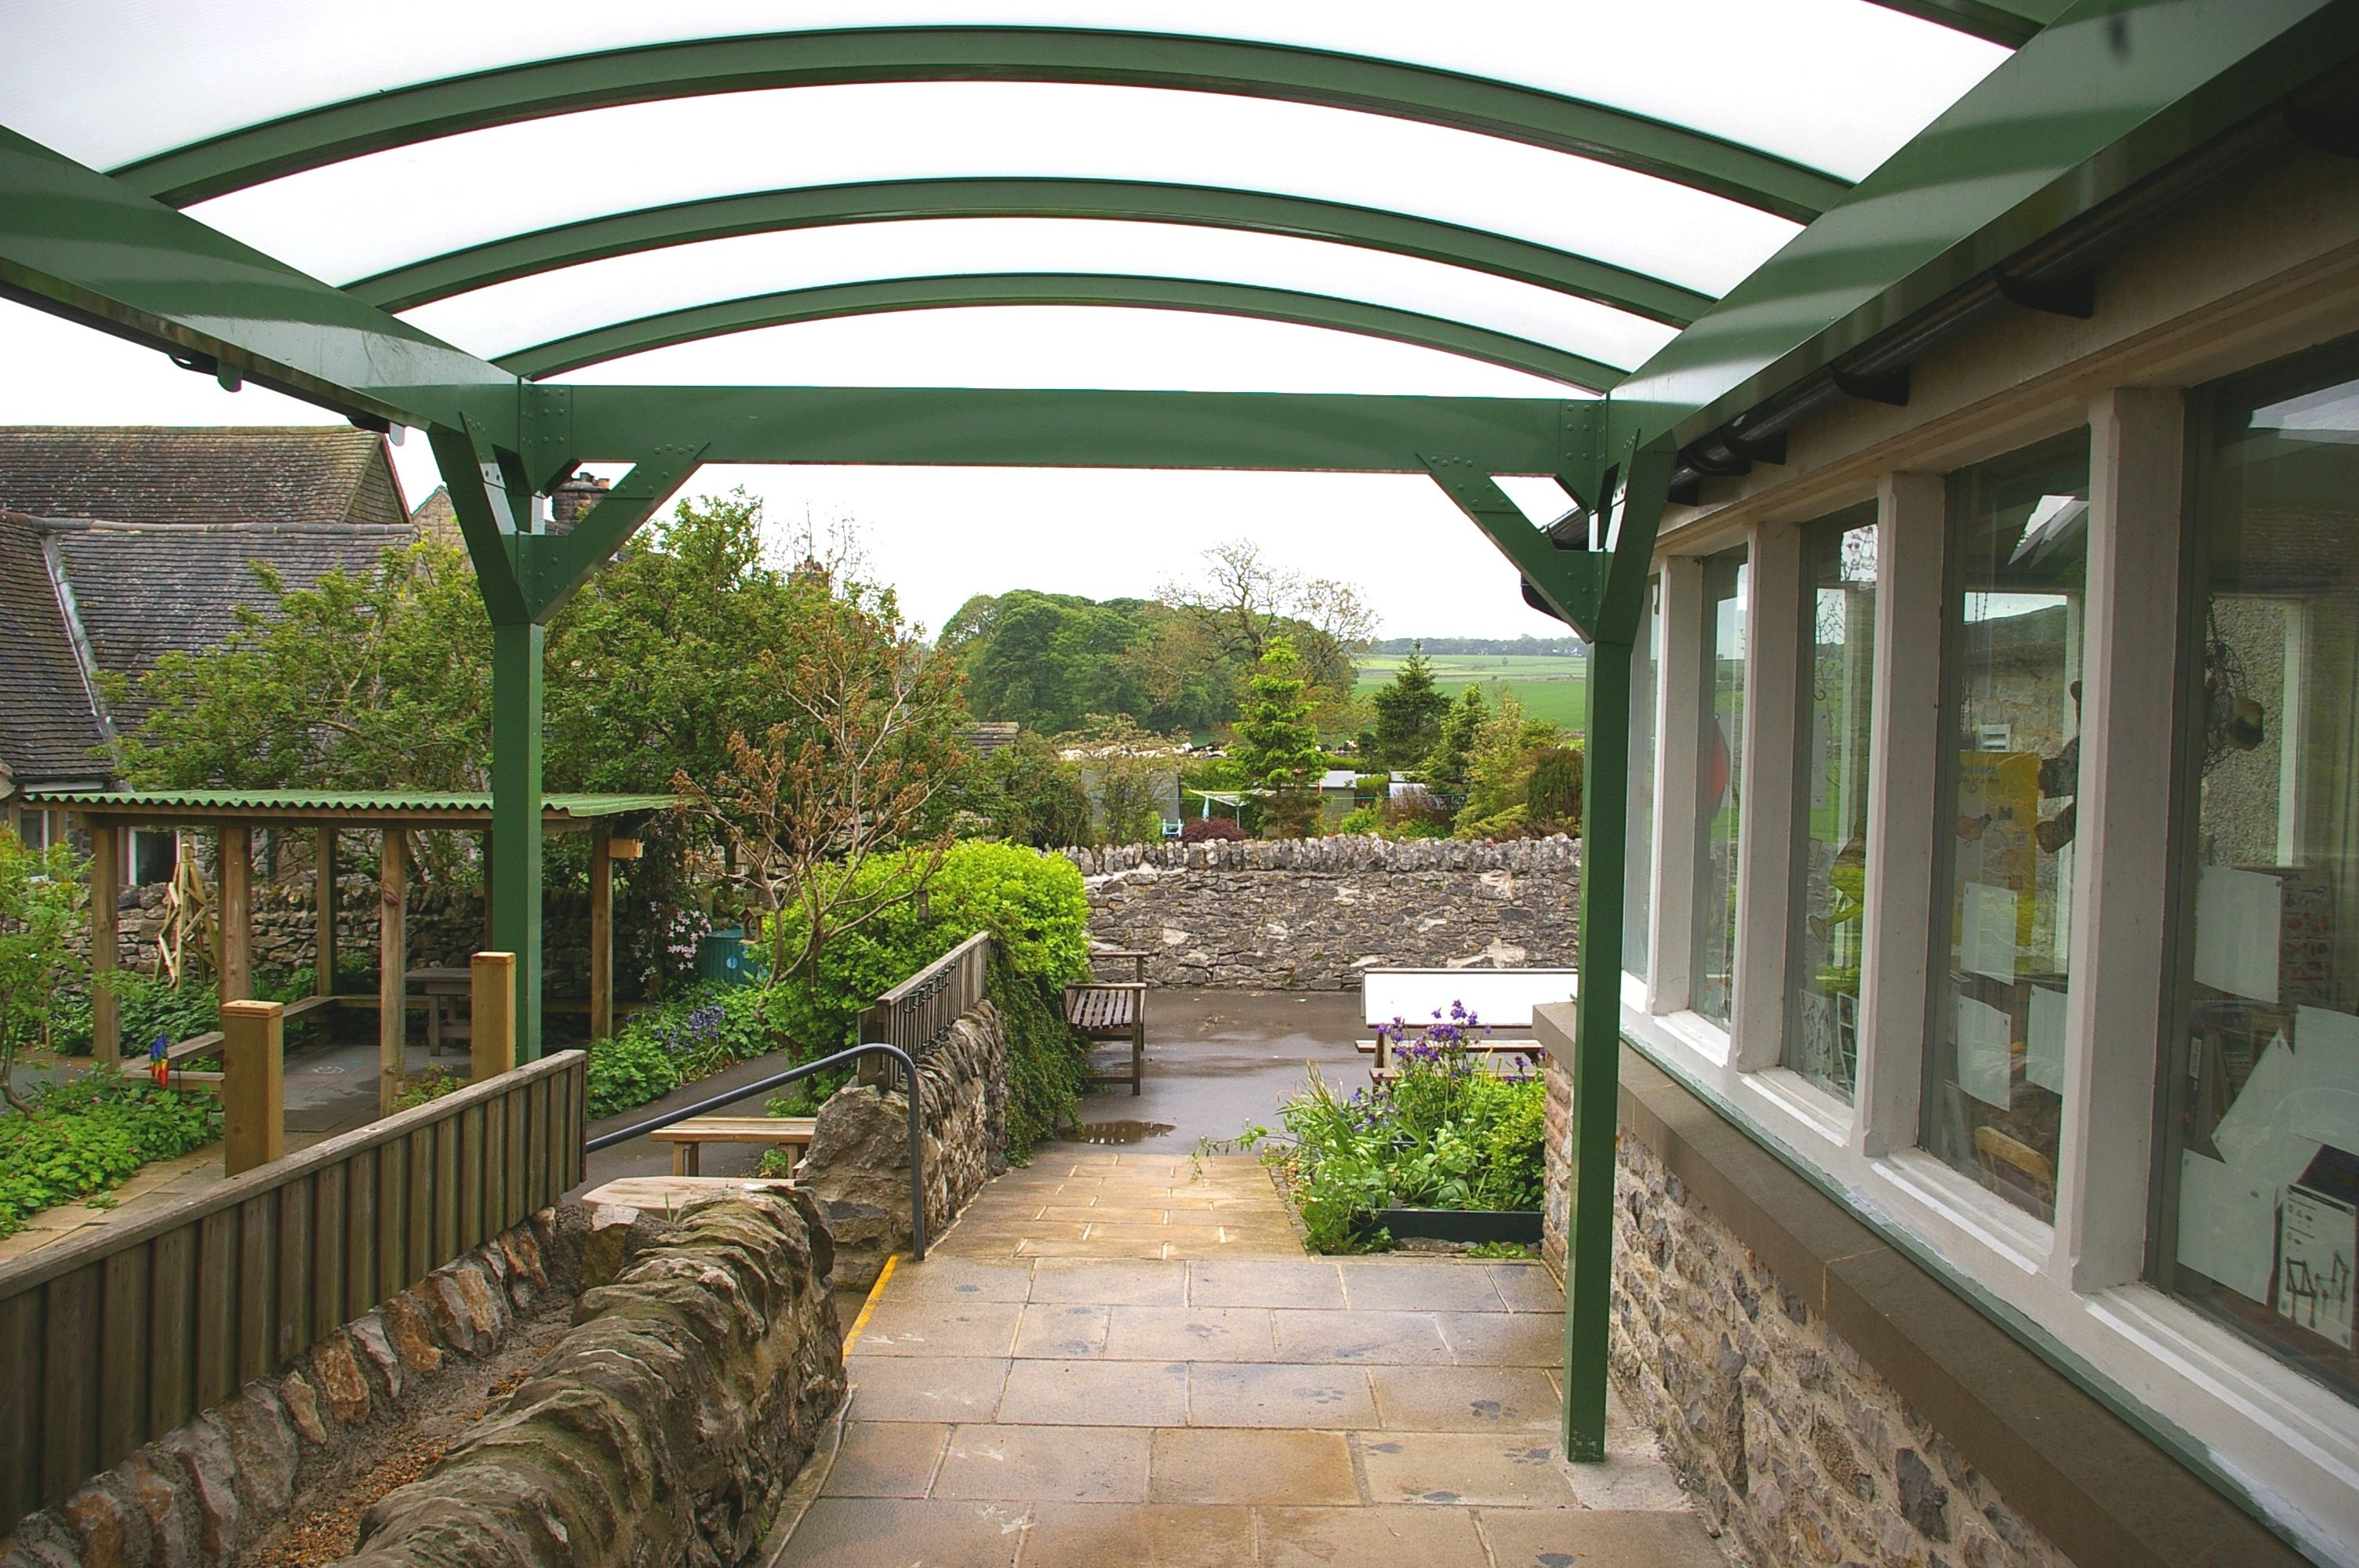 Flagg_School_Entrance_Canopy_Derbyshire.JPG (3008×2000)